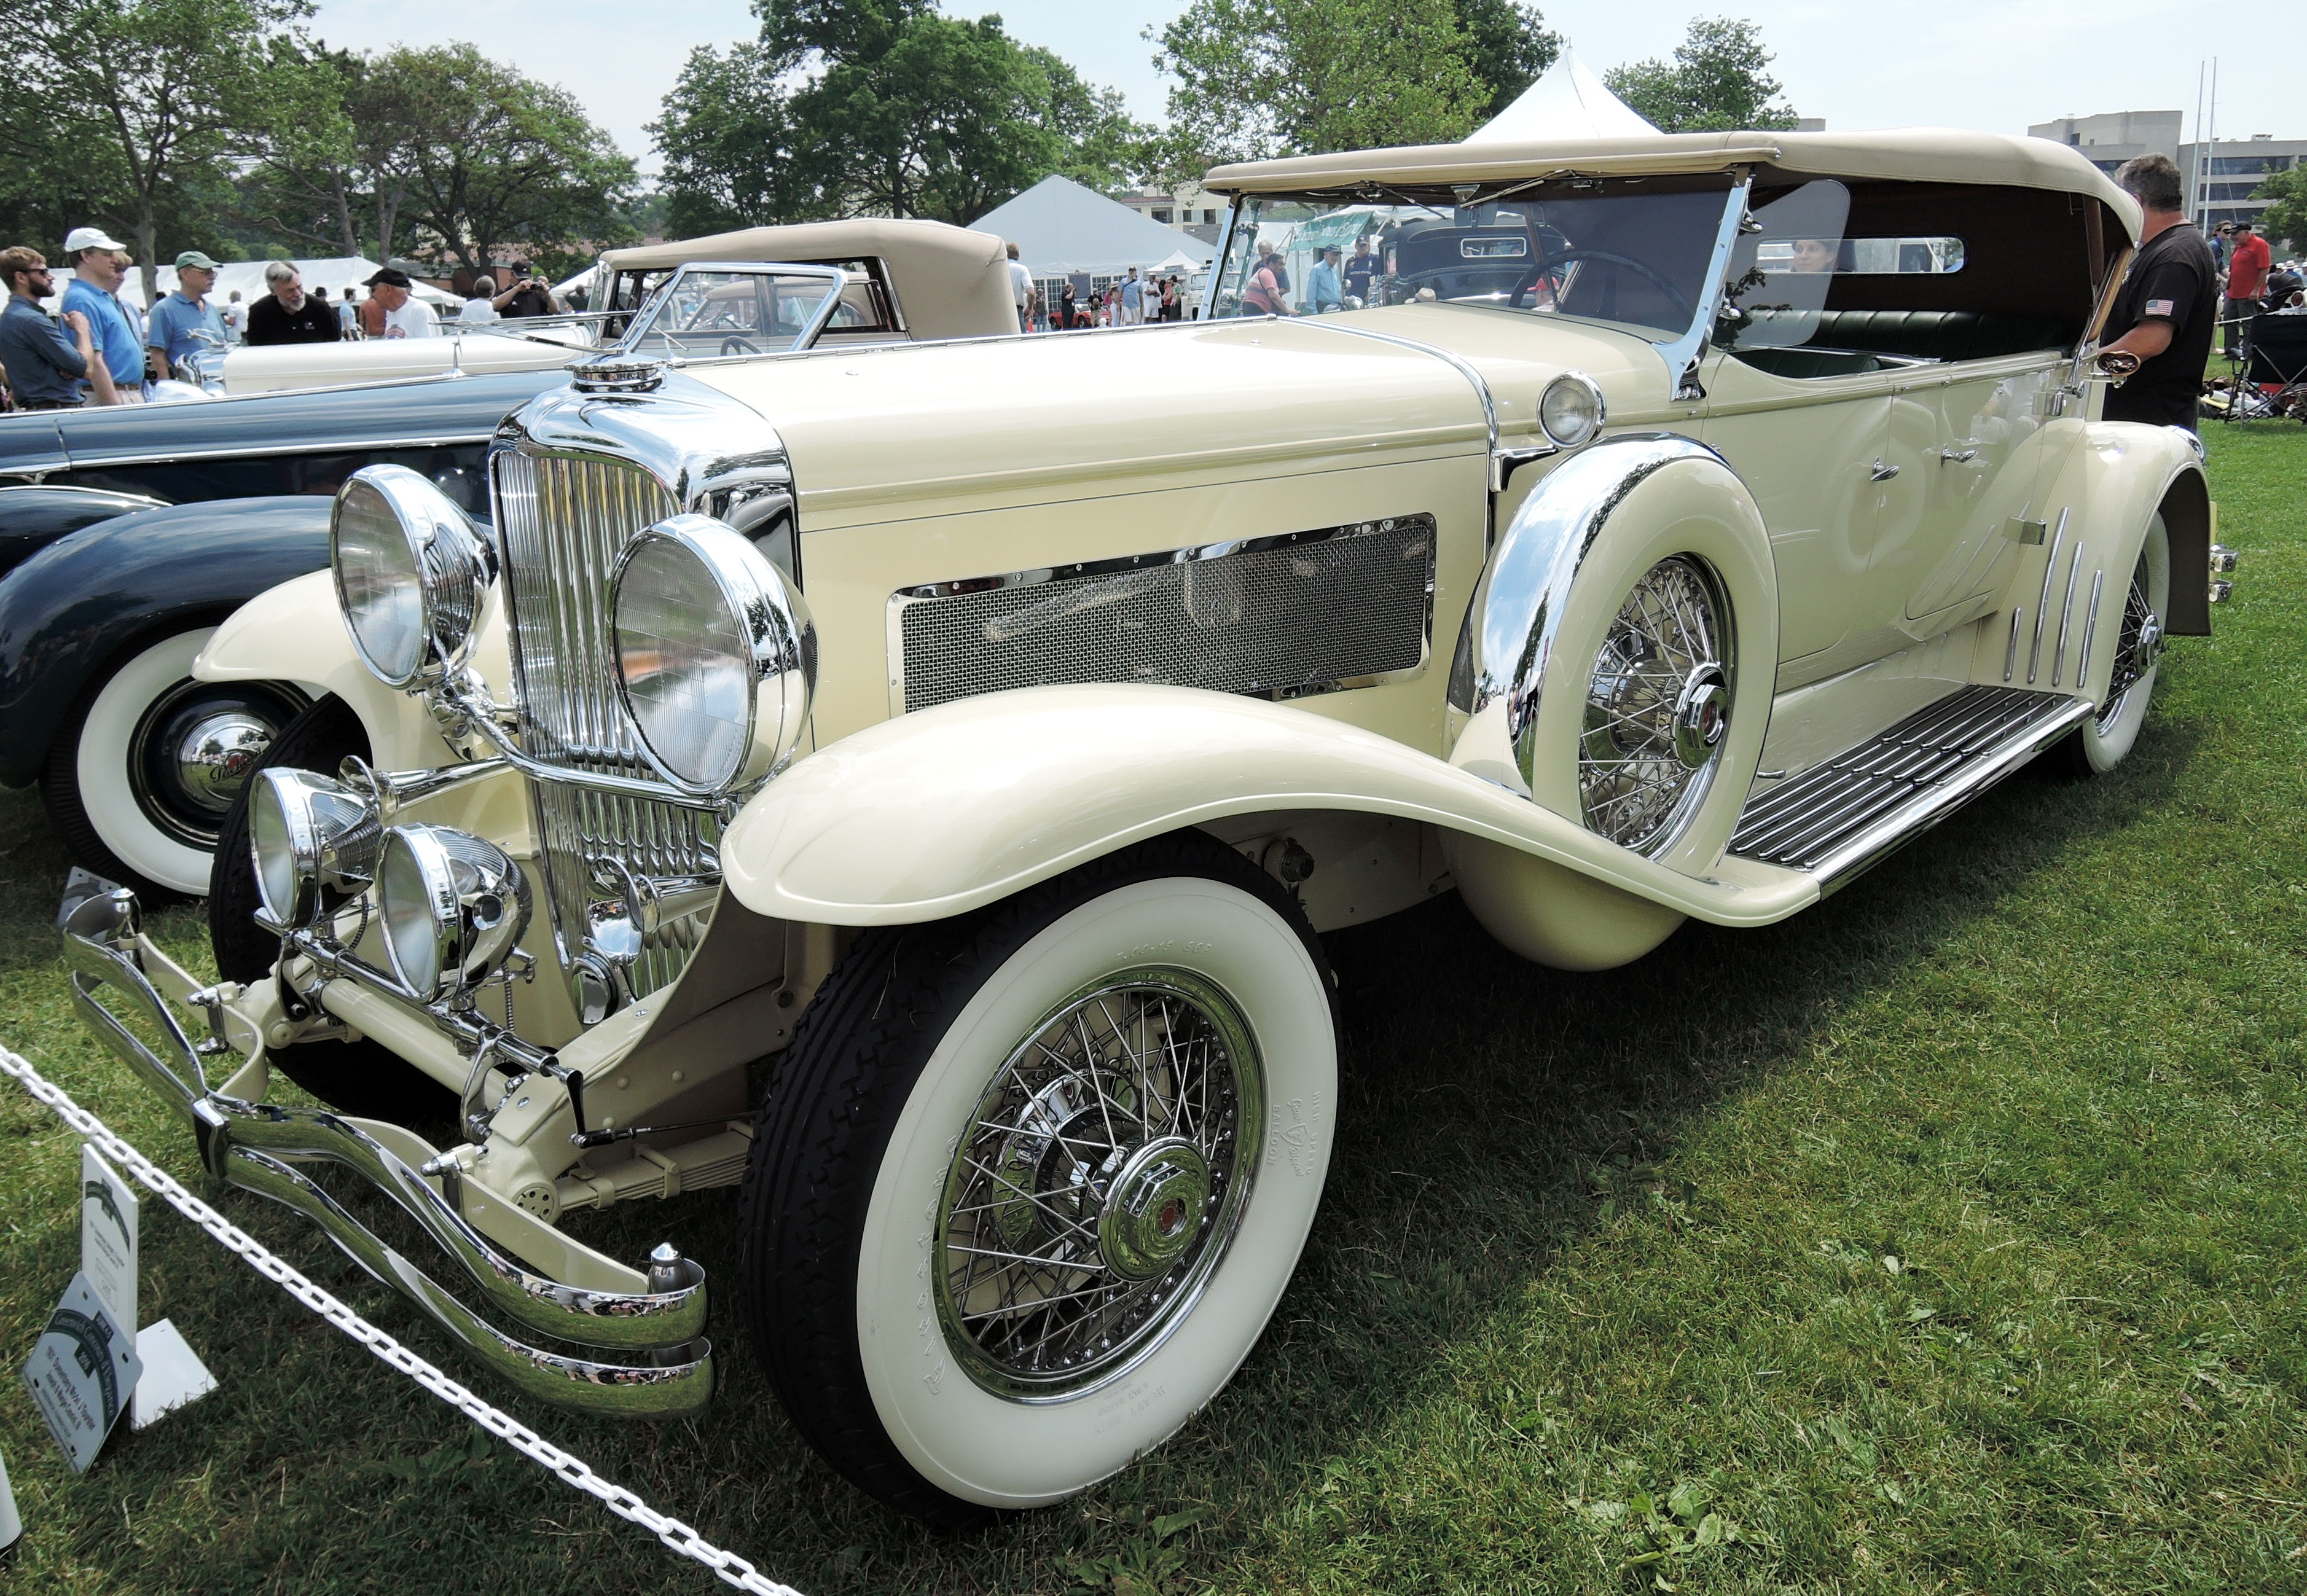 off white 1931 Duesenberg Model J Tourster Convertible - greenwich concours